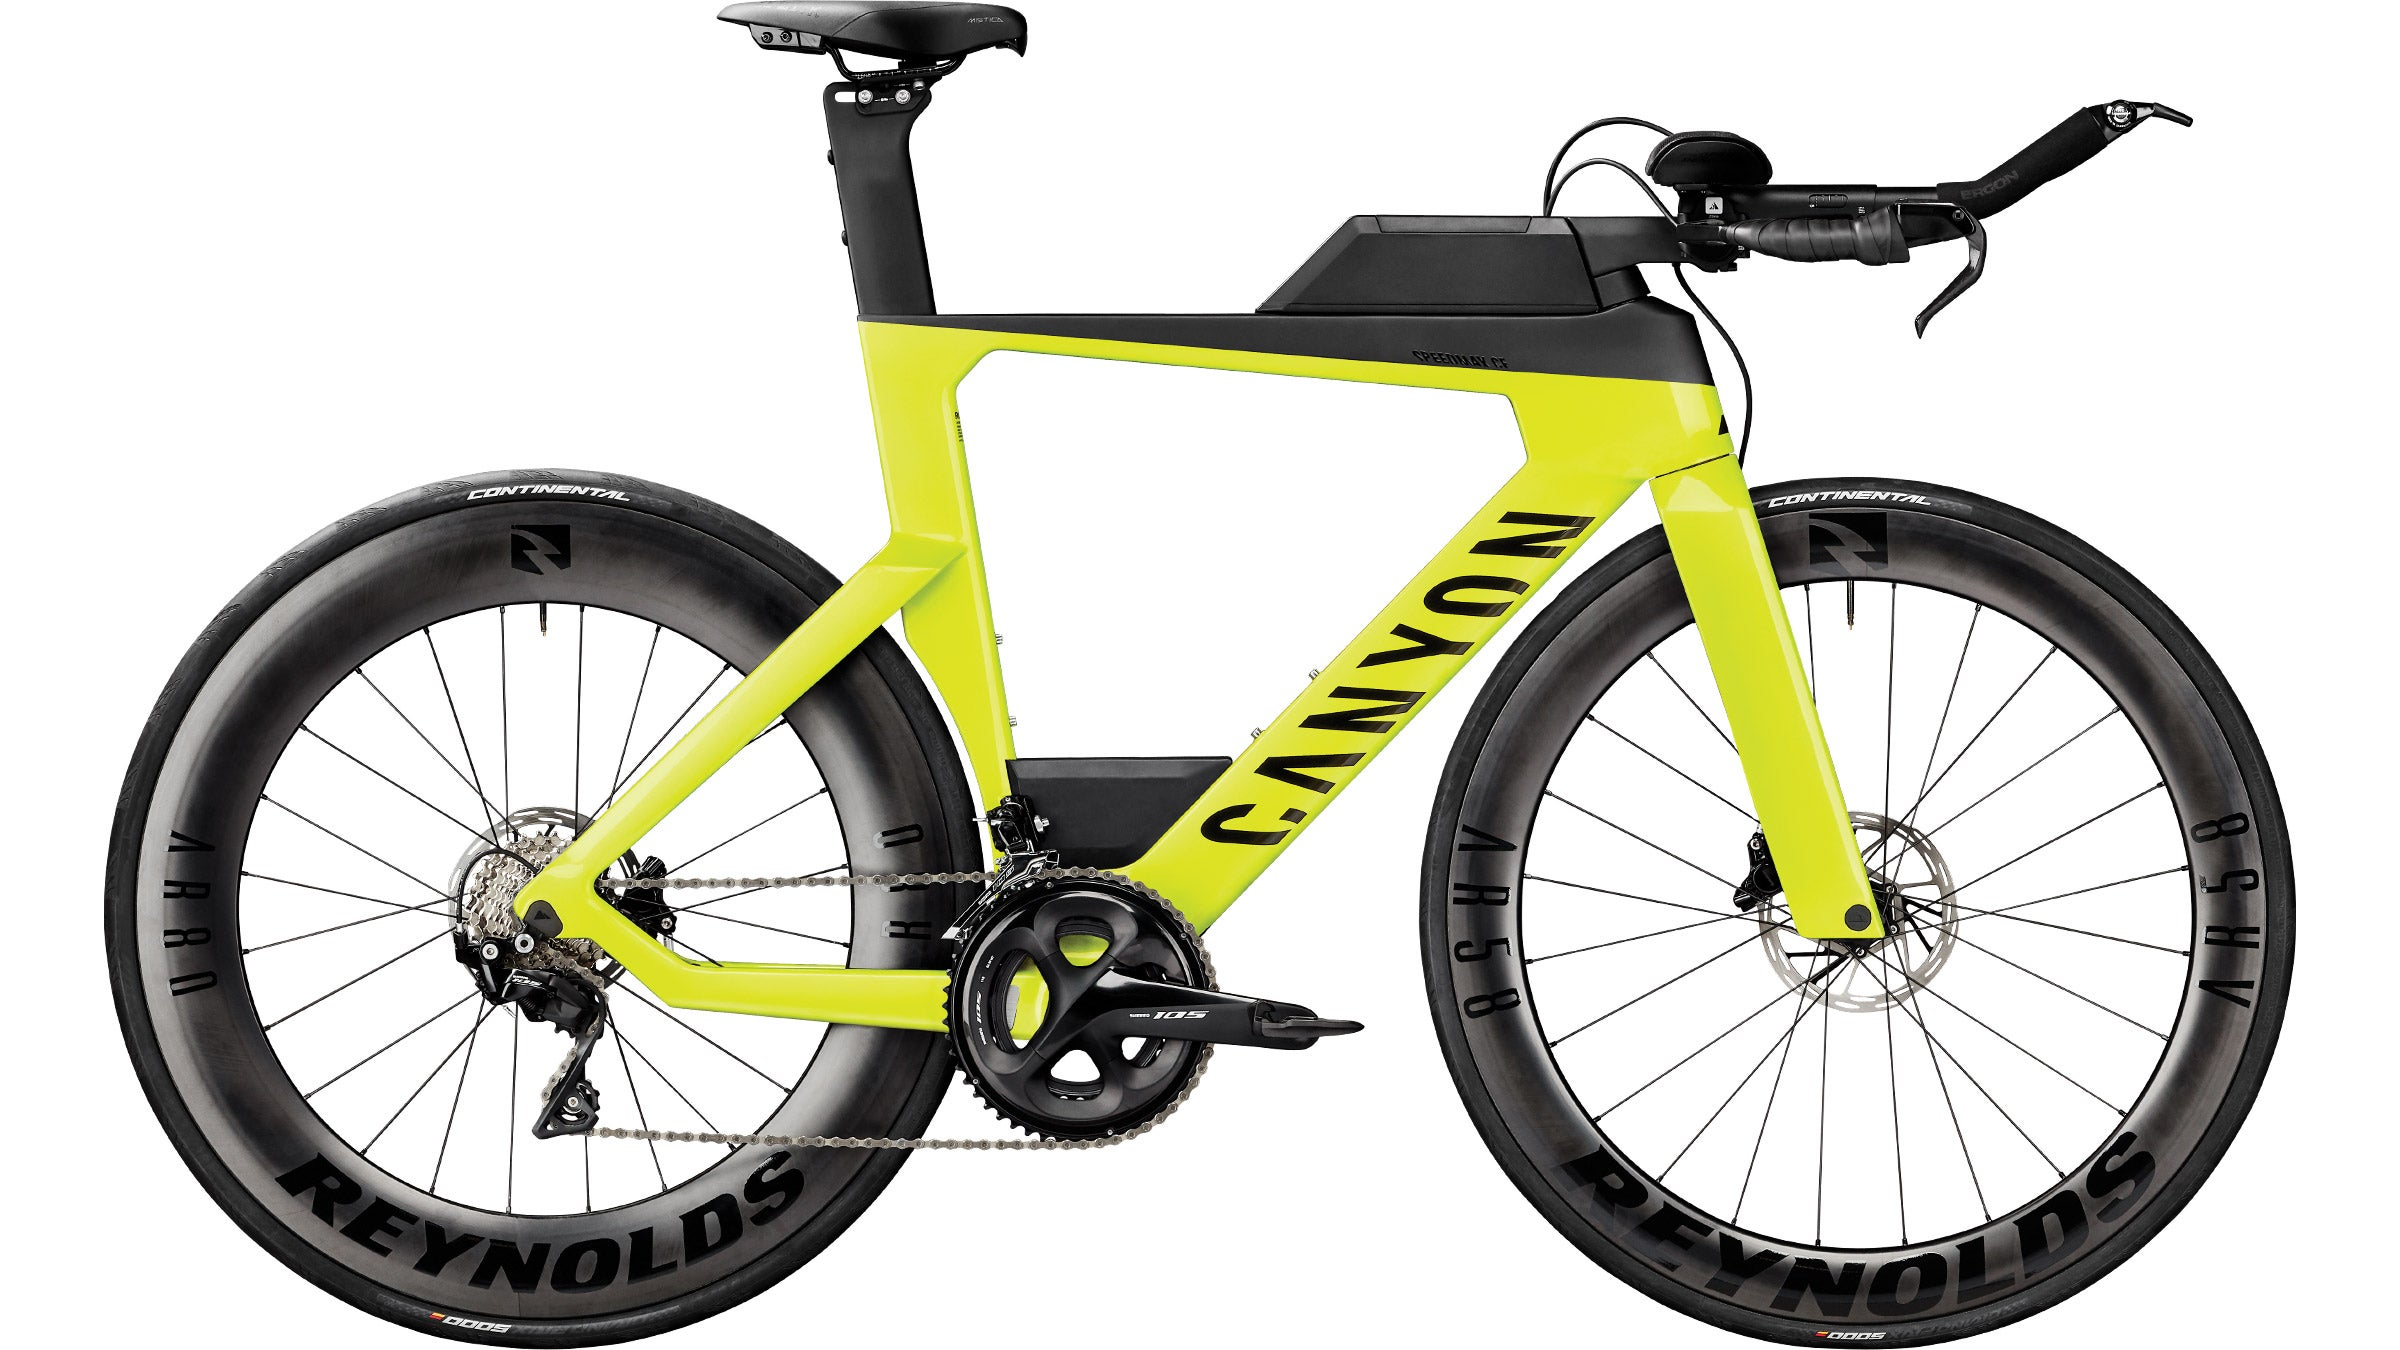 The Canyon Speedmax CF 7 Disc is one of the best triathlon bikes of 2021 and is available for $3,800.